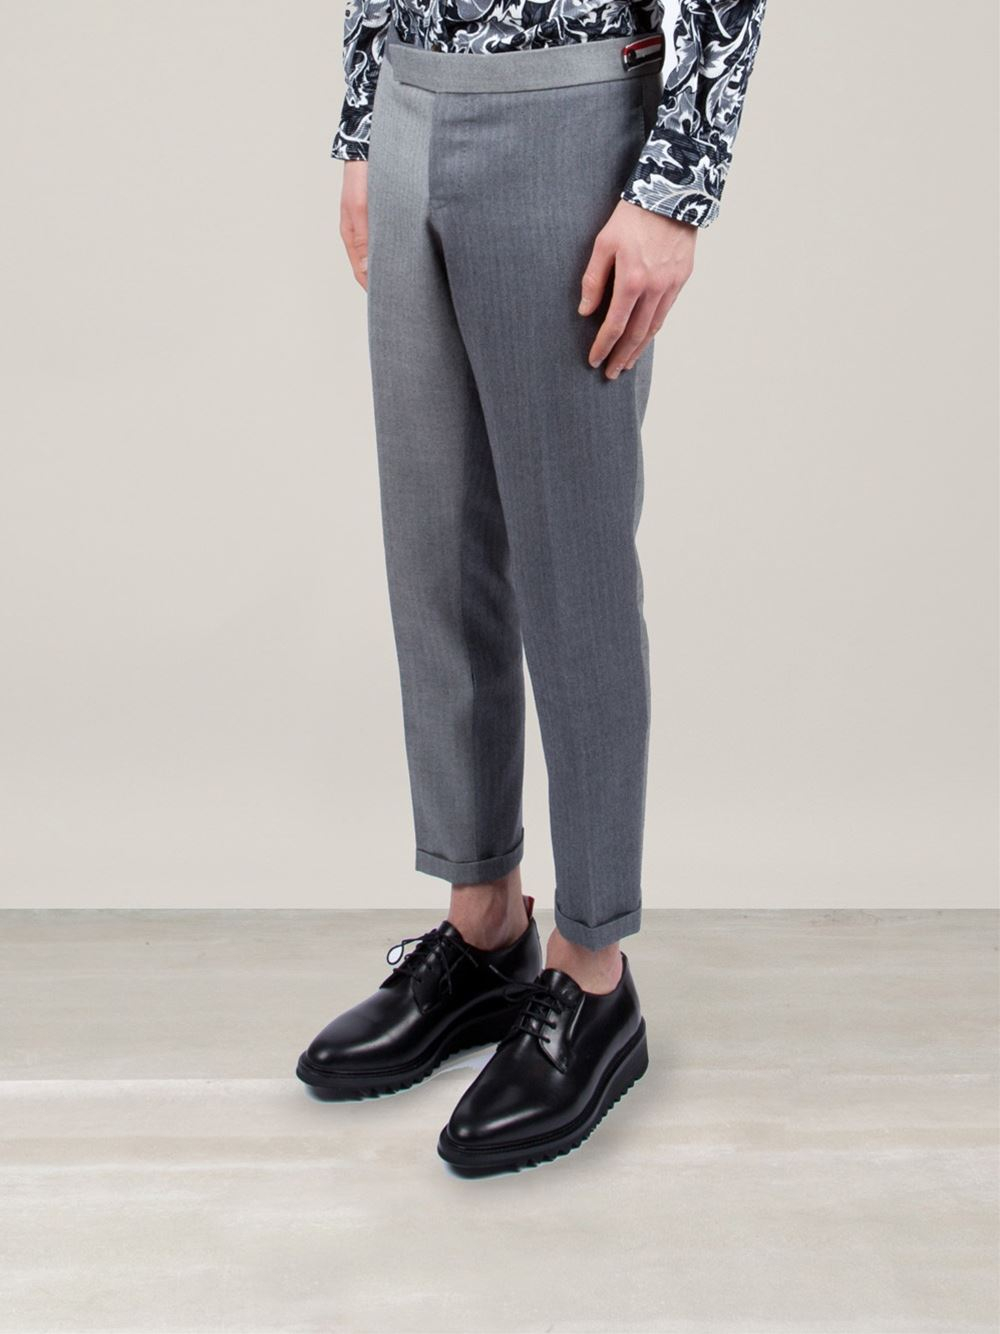 tailored trousers - Blue Thom Browne i46Zg2YZtv